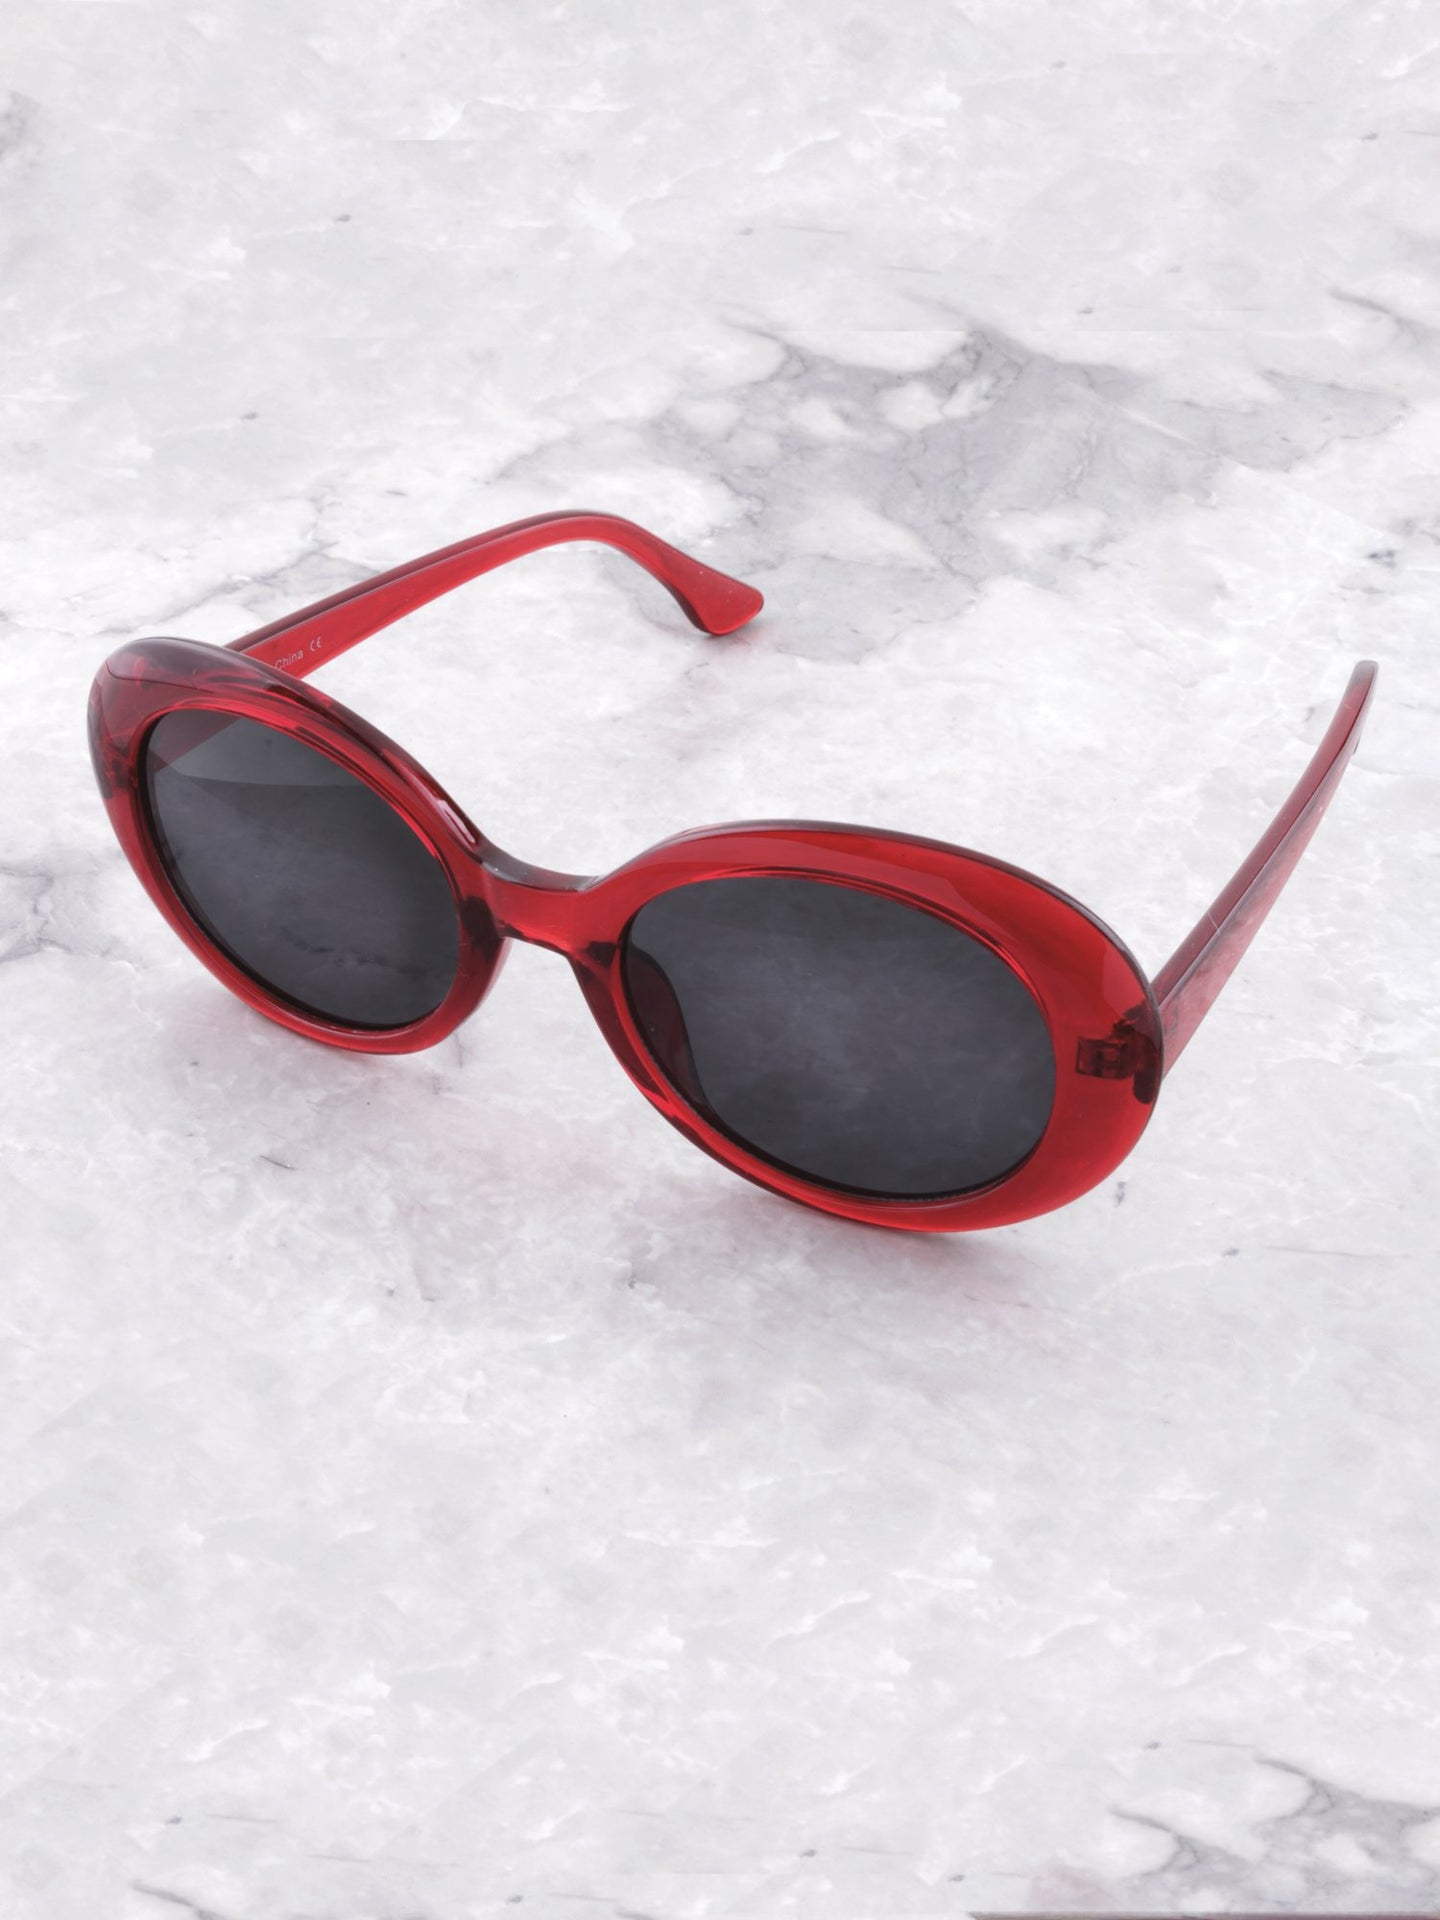 Vintage Oval Sunglasses Anarchy Street Red